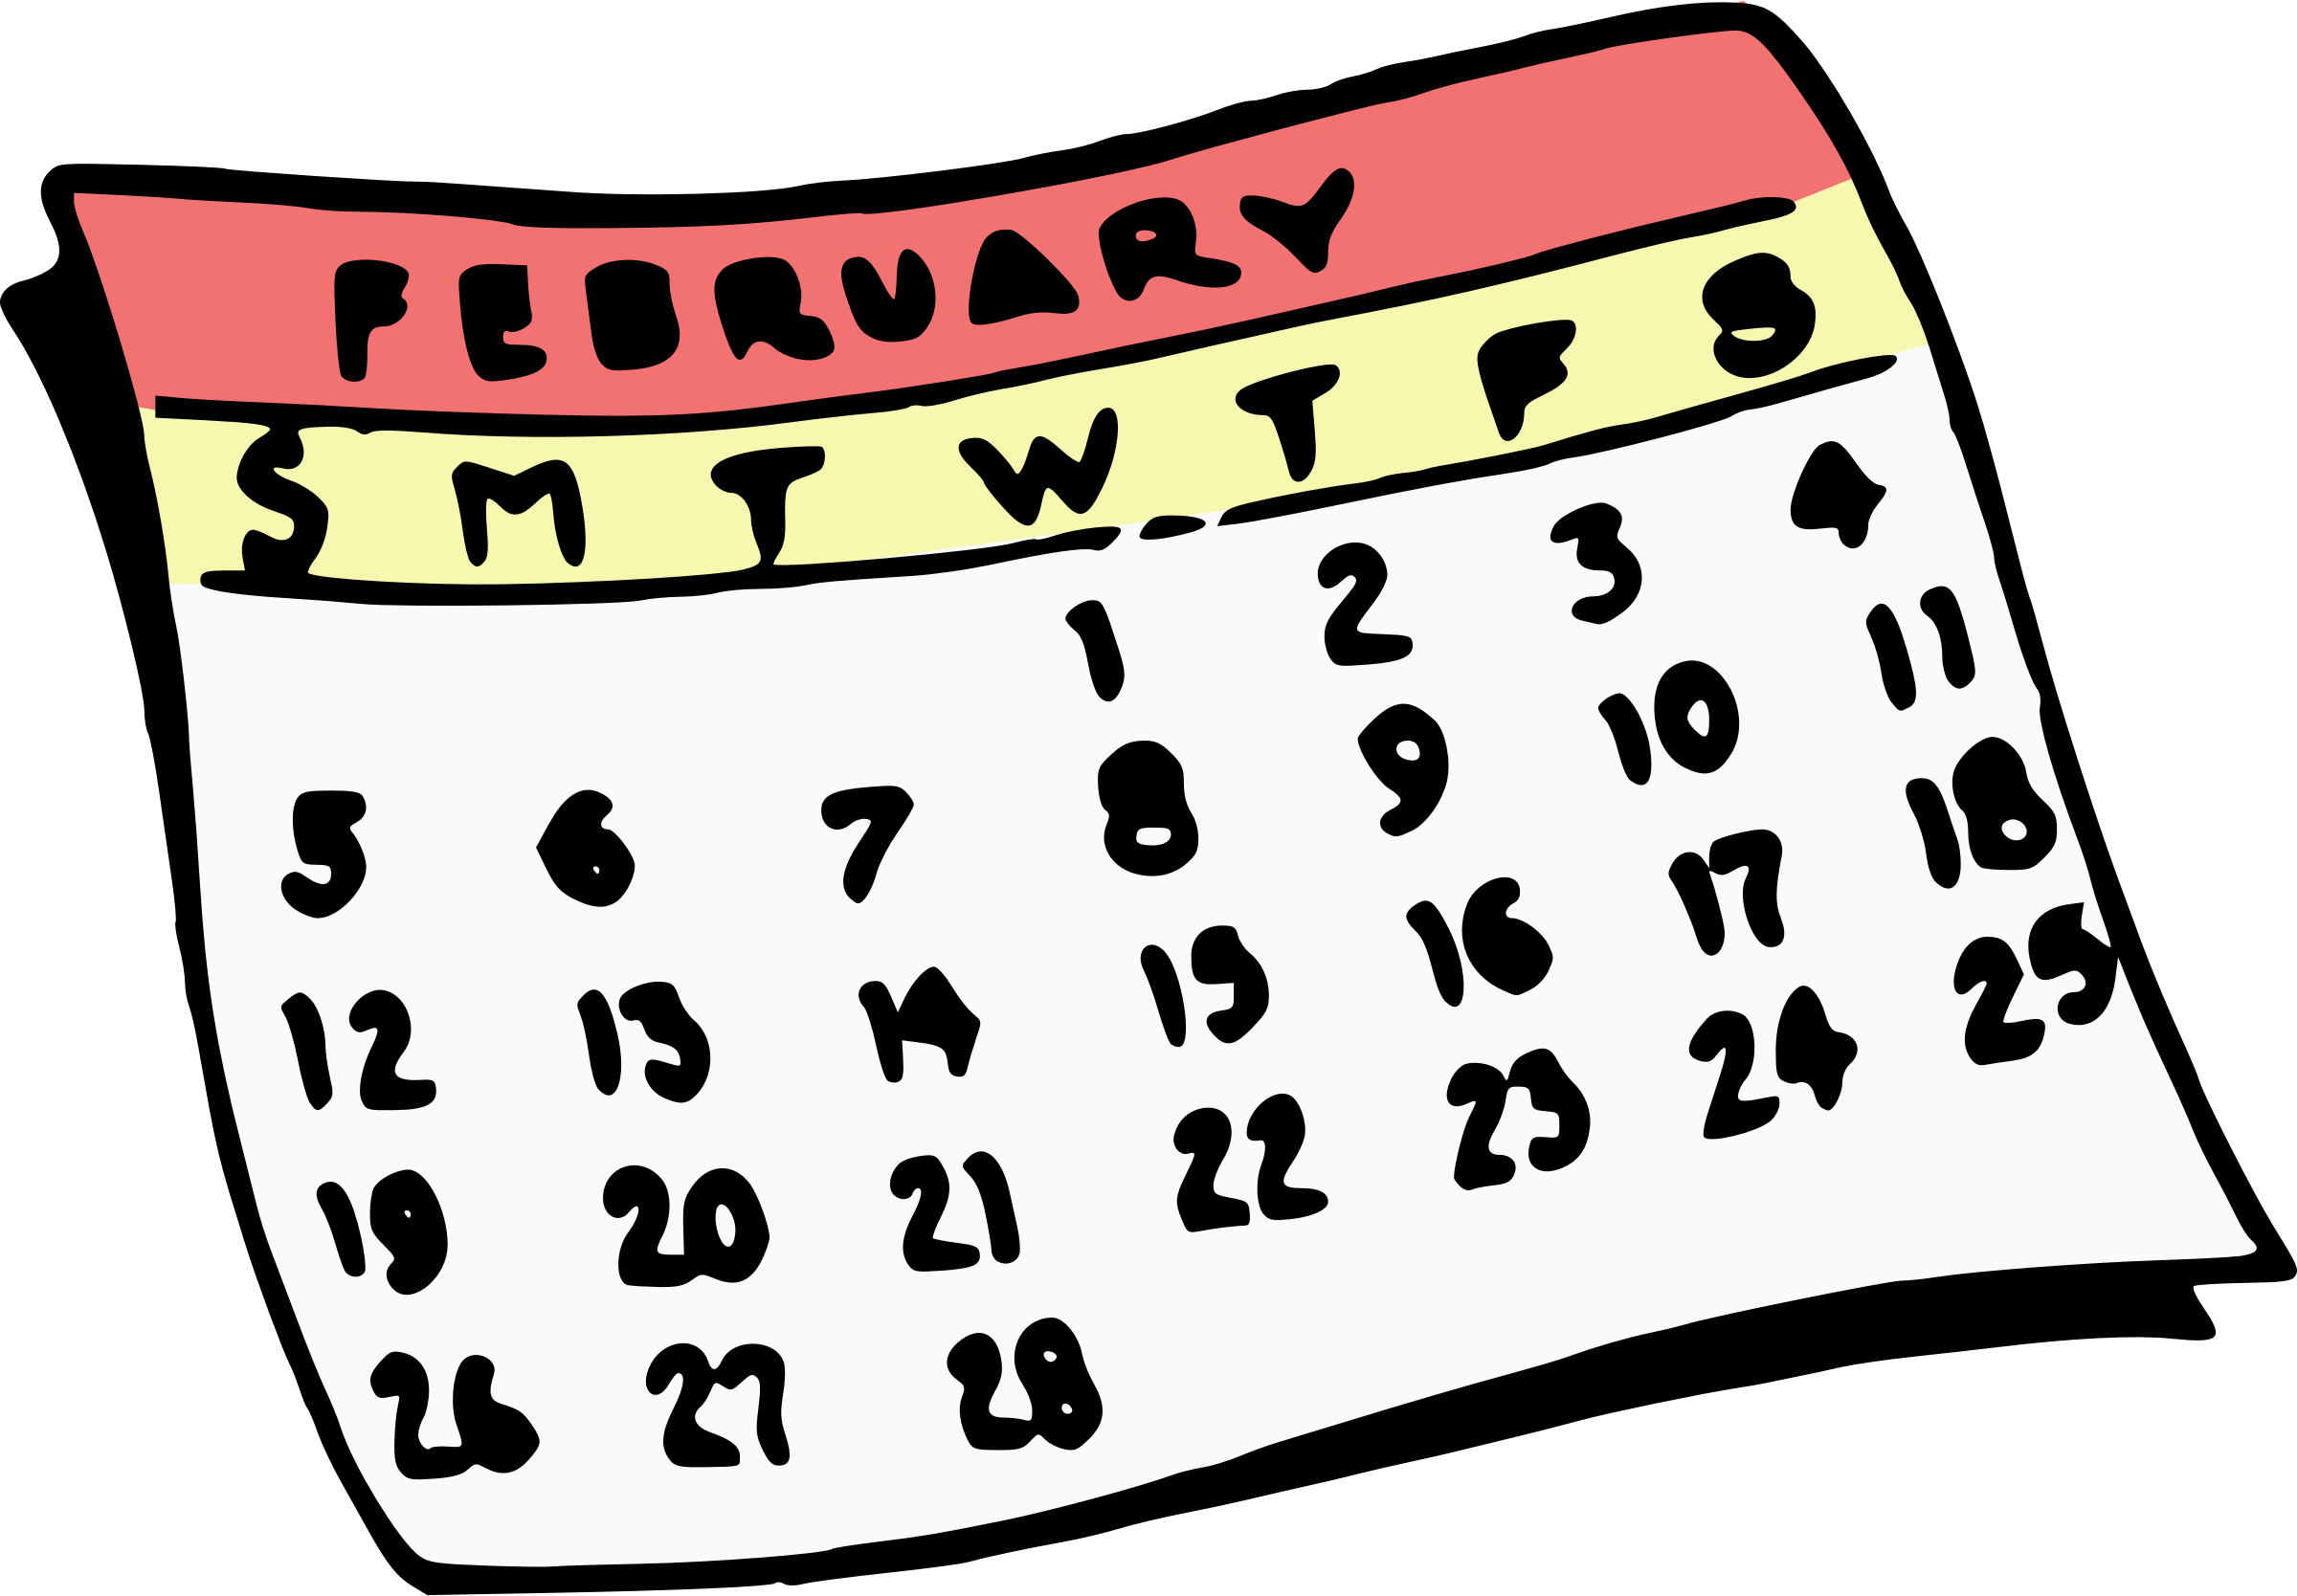 Clipart for february picture transparent download Clipart - February Calendar picture transparent download